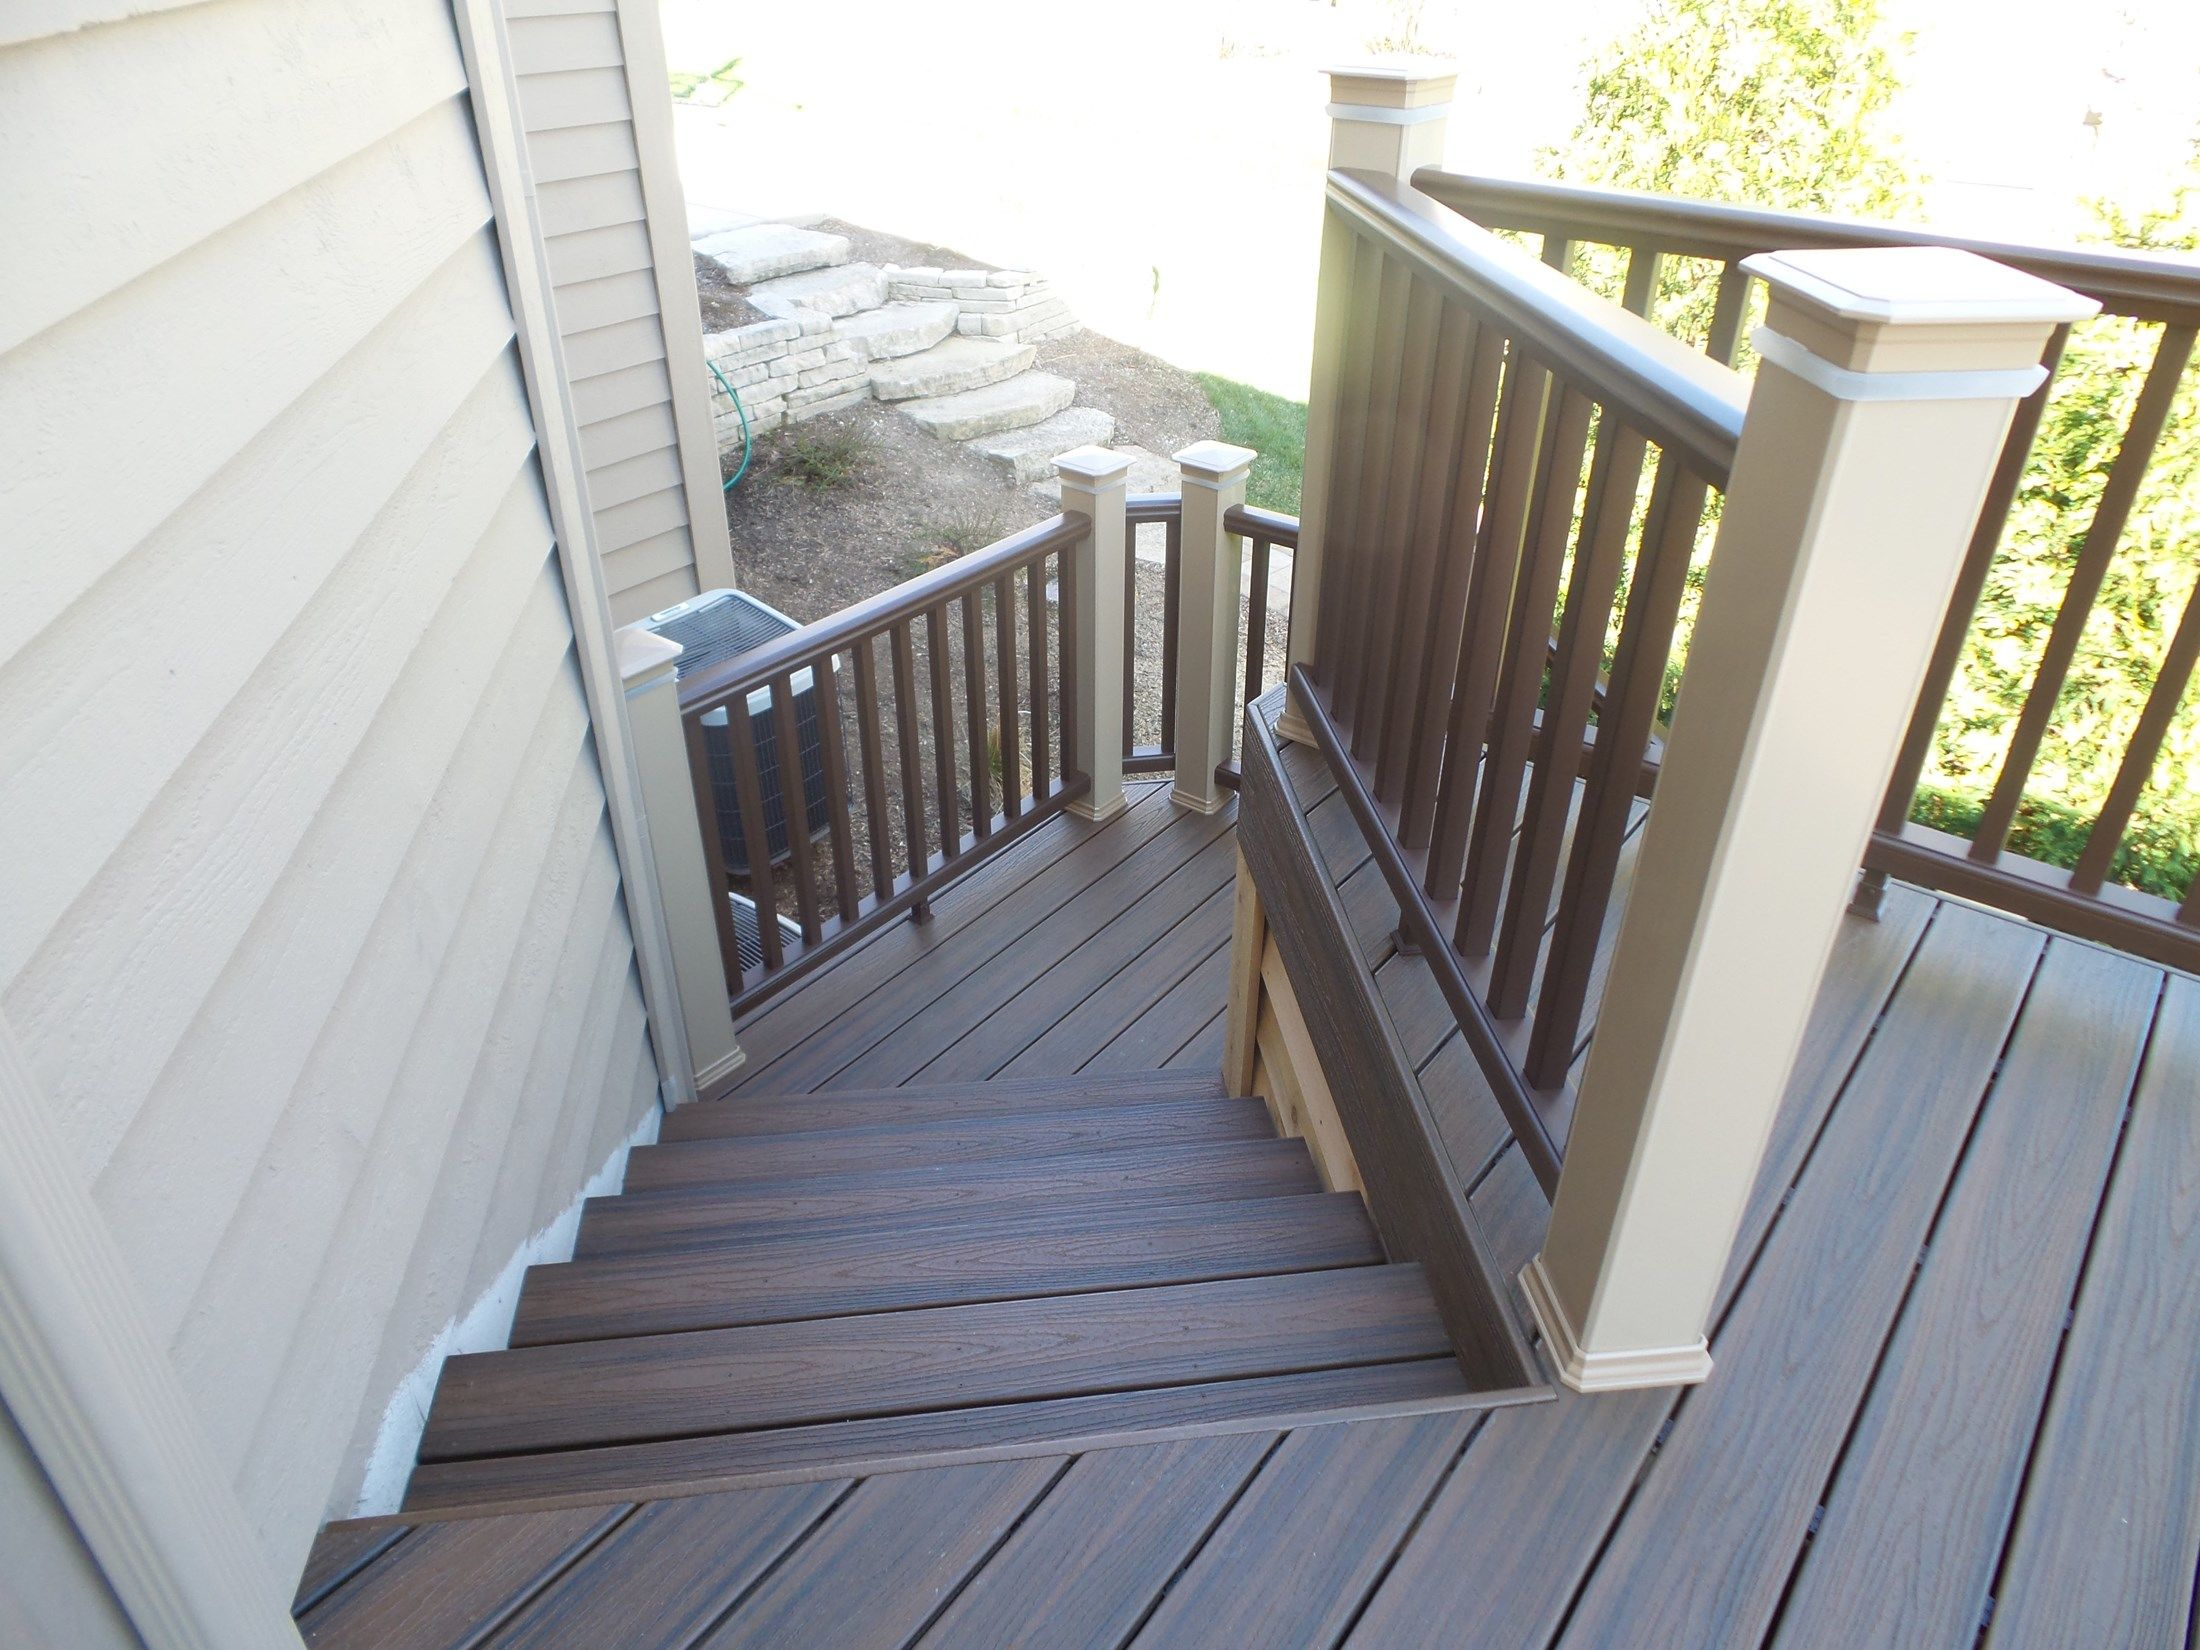 composite deck picture 3813